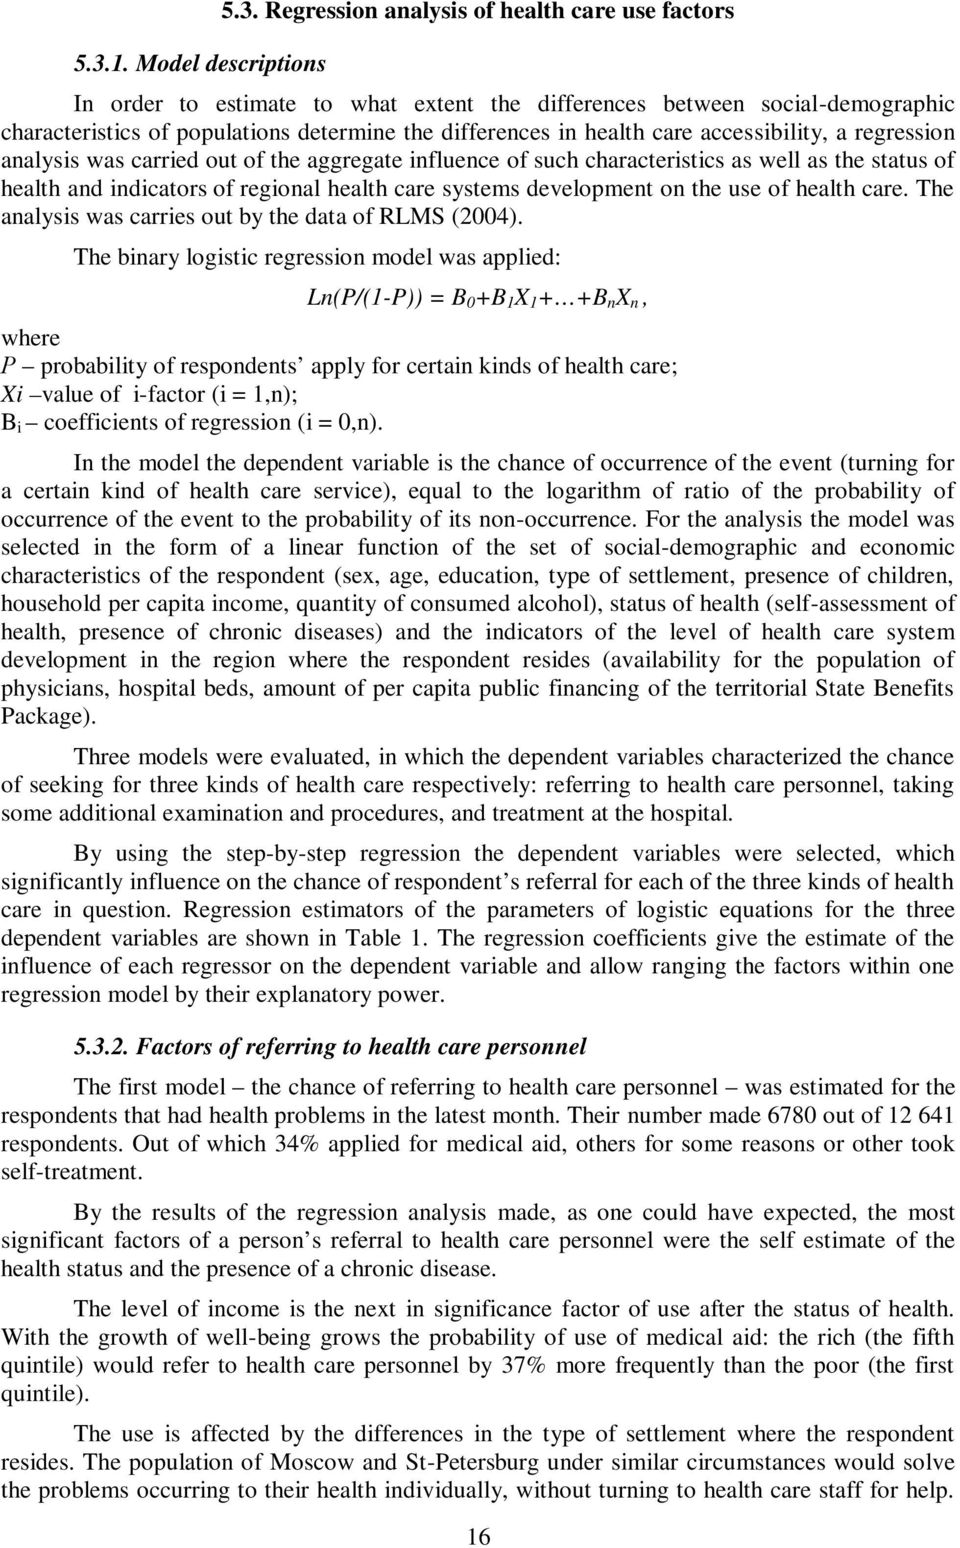 health care systems development on the use of health care. The analysis was carries out by the data of RLMS (2004).